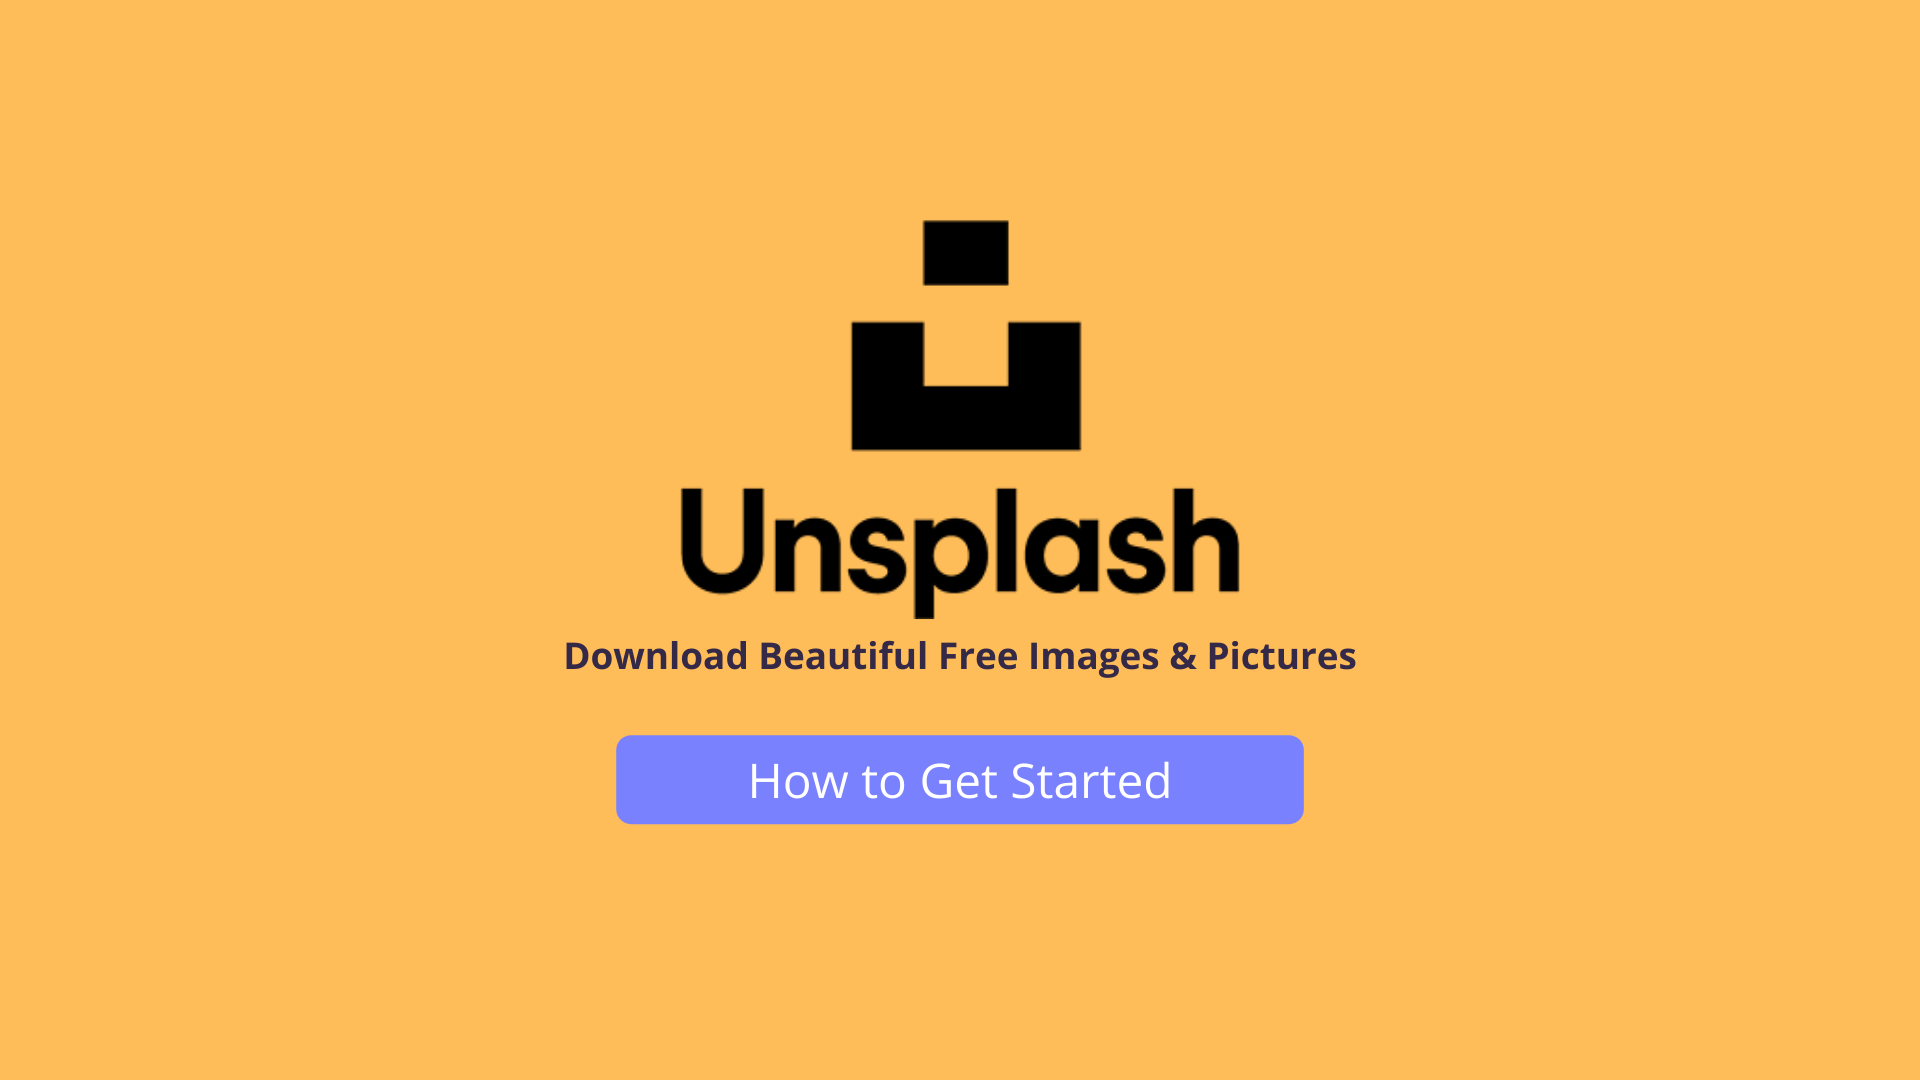 What is Unsplash?